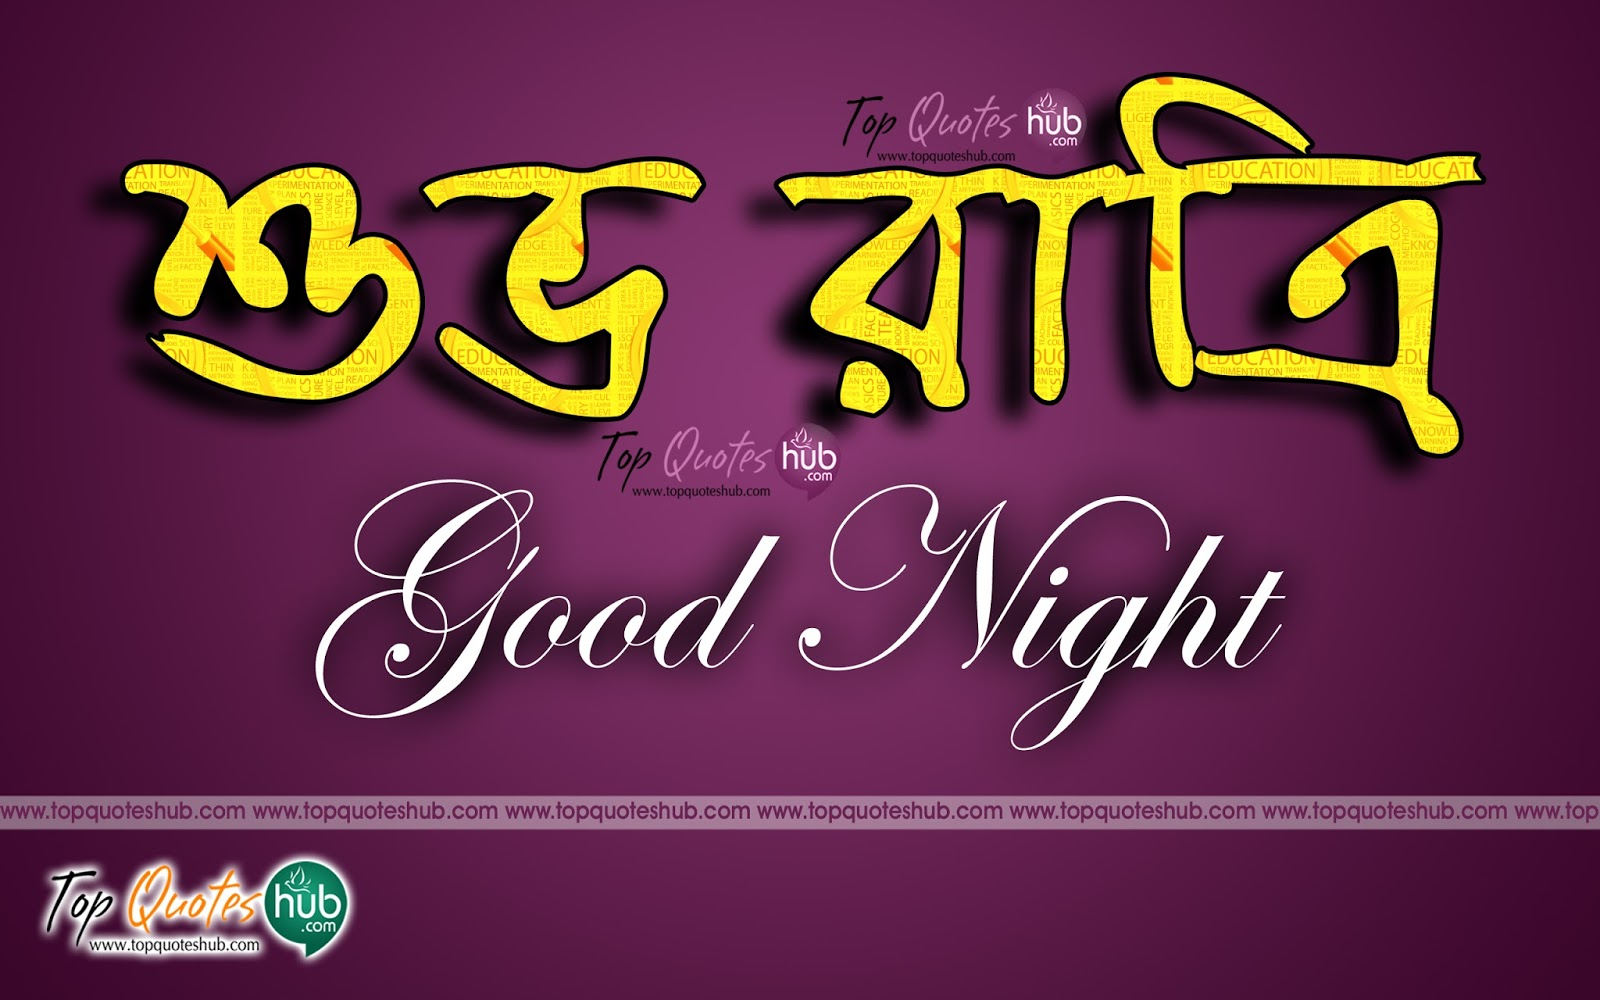 Shuvo ratri bengali good night hd wallpaper topquoteshub telugu bengali good night sms quotes bengali good night wishes quotes bengali good night e greeting cards for facebookbangla sms quotes and sayings in bengali m4hsunfo